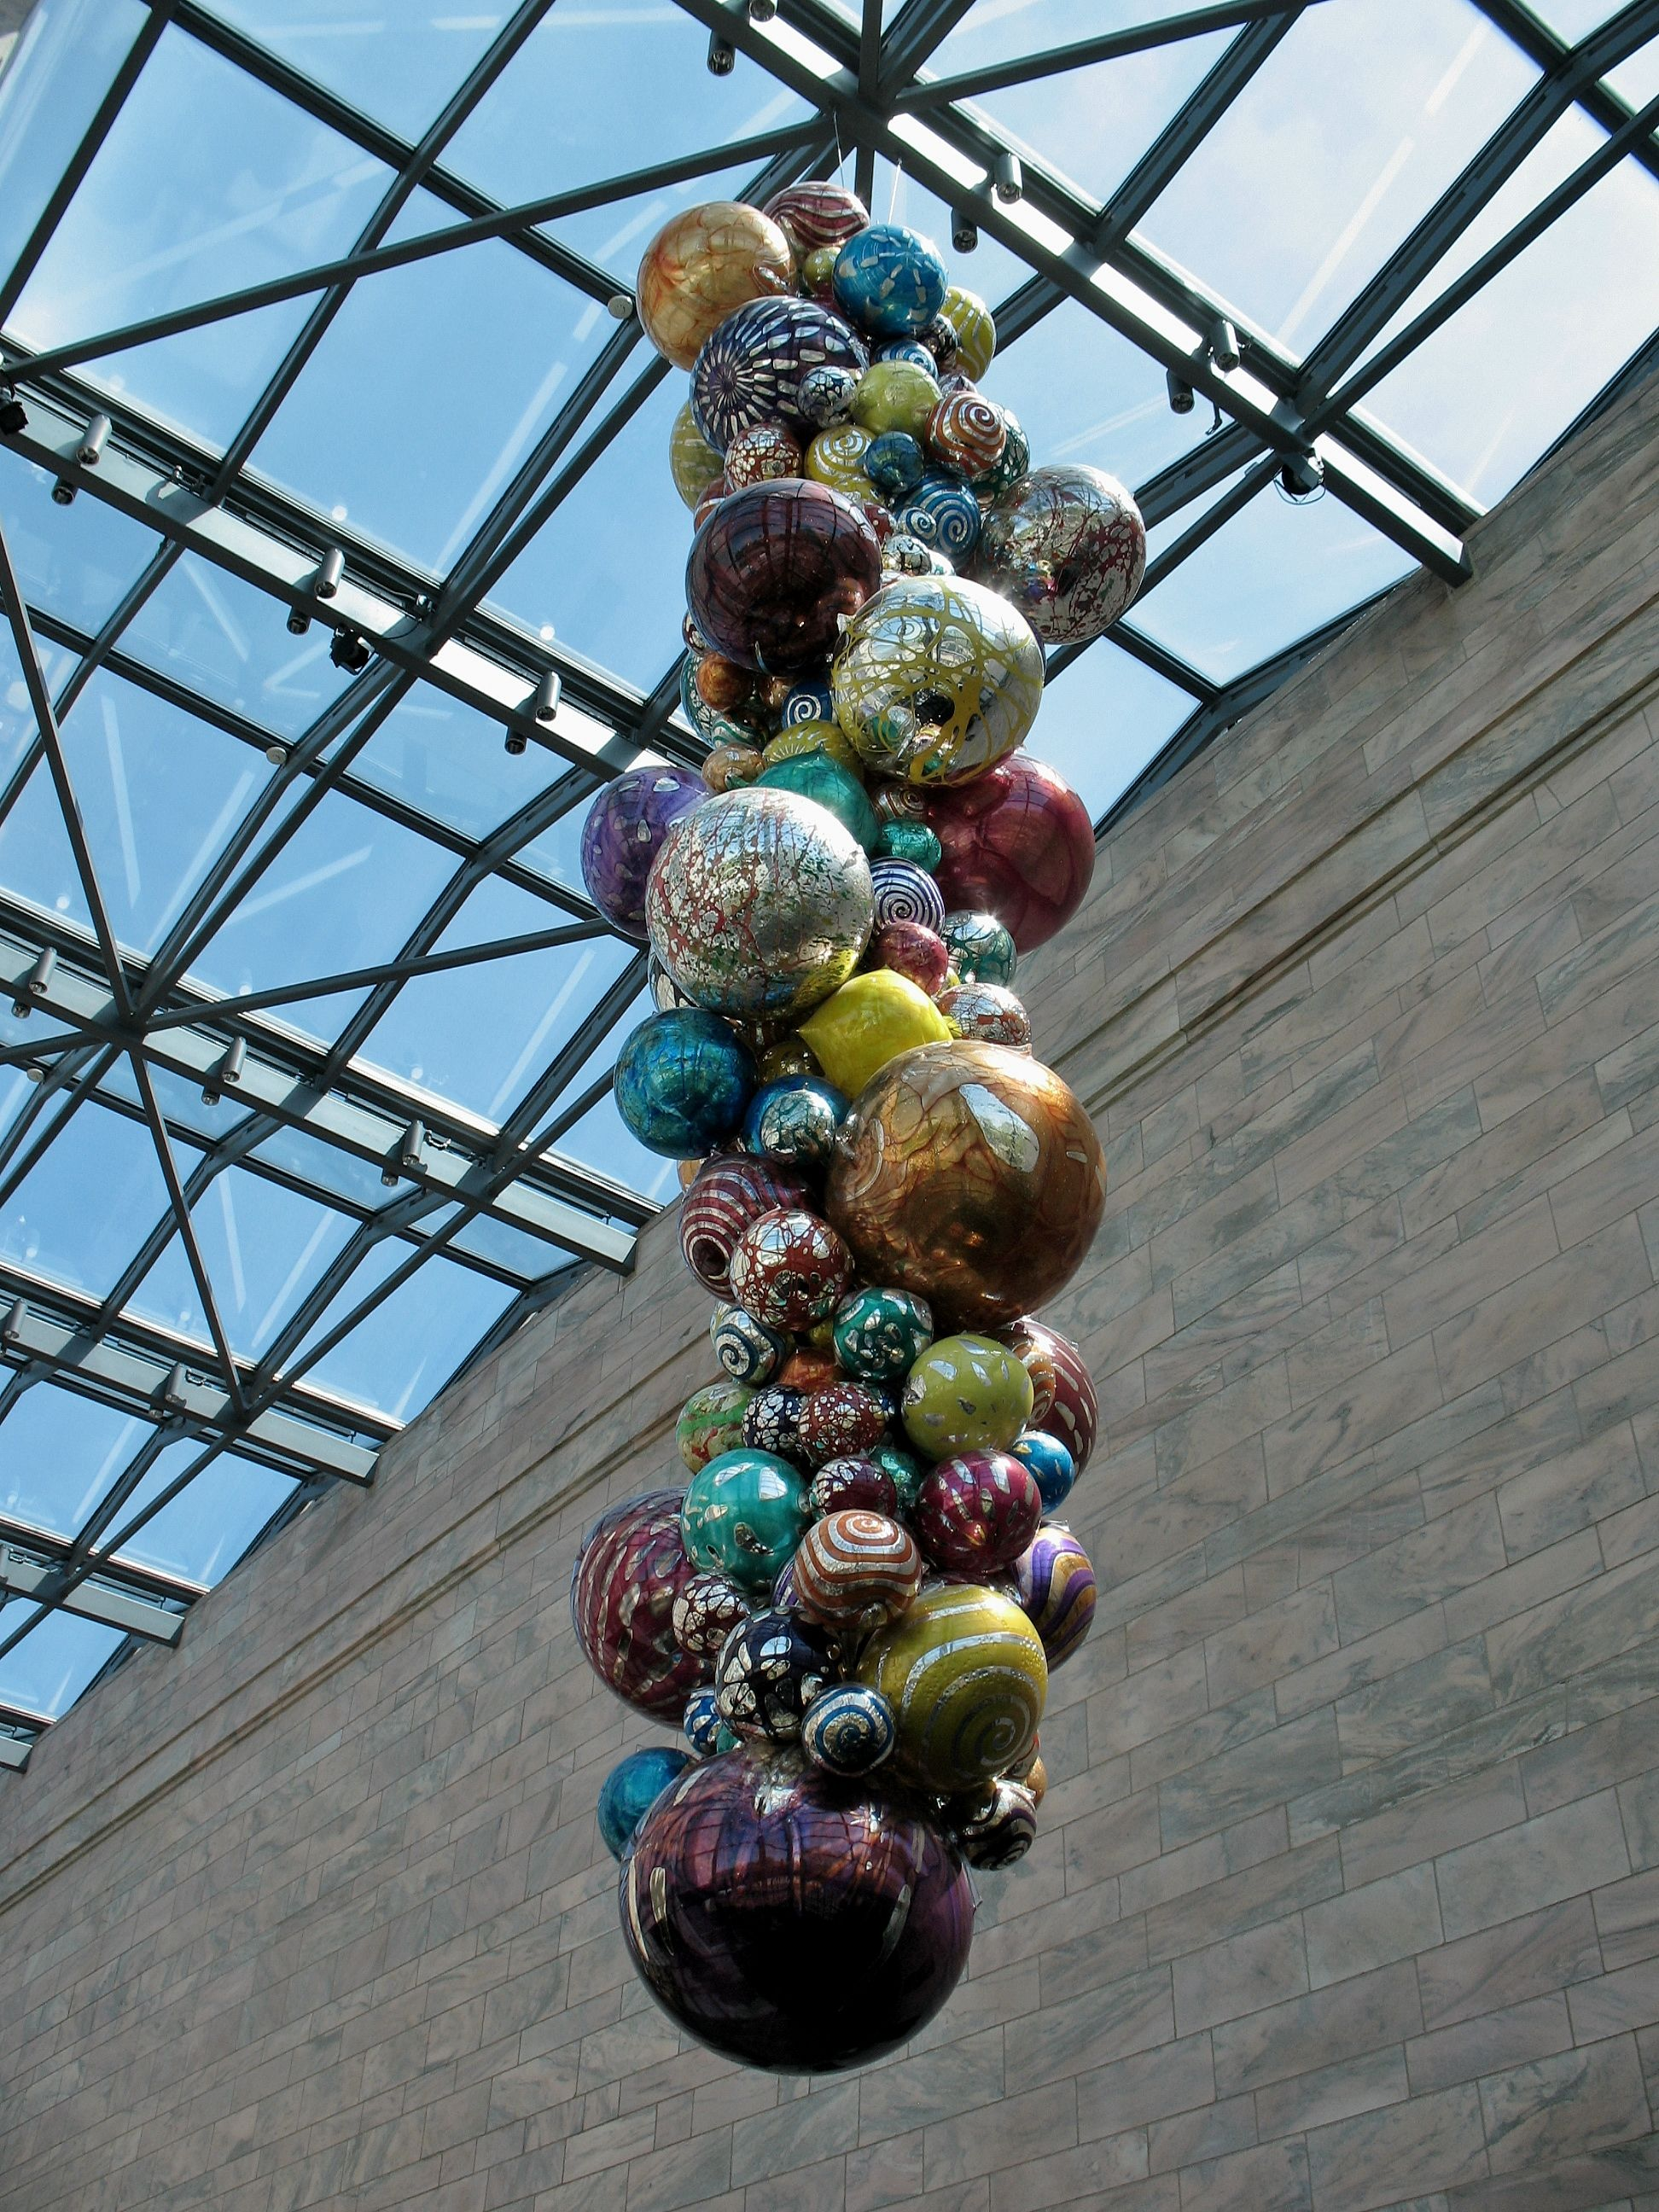 Polyvitro chandelier by Dale Chihuly over cafe in Atrium of Joslyn